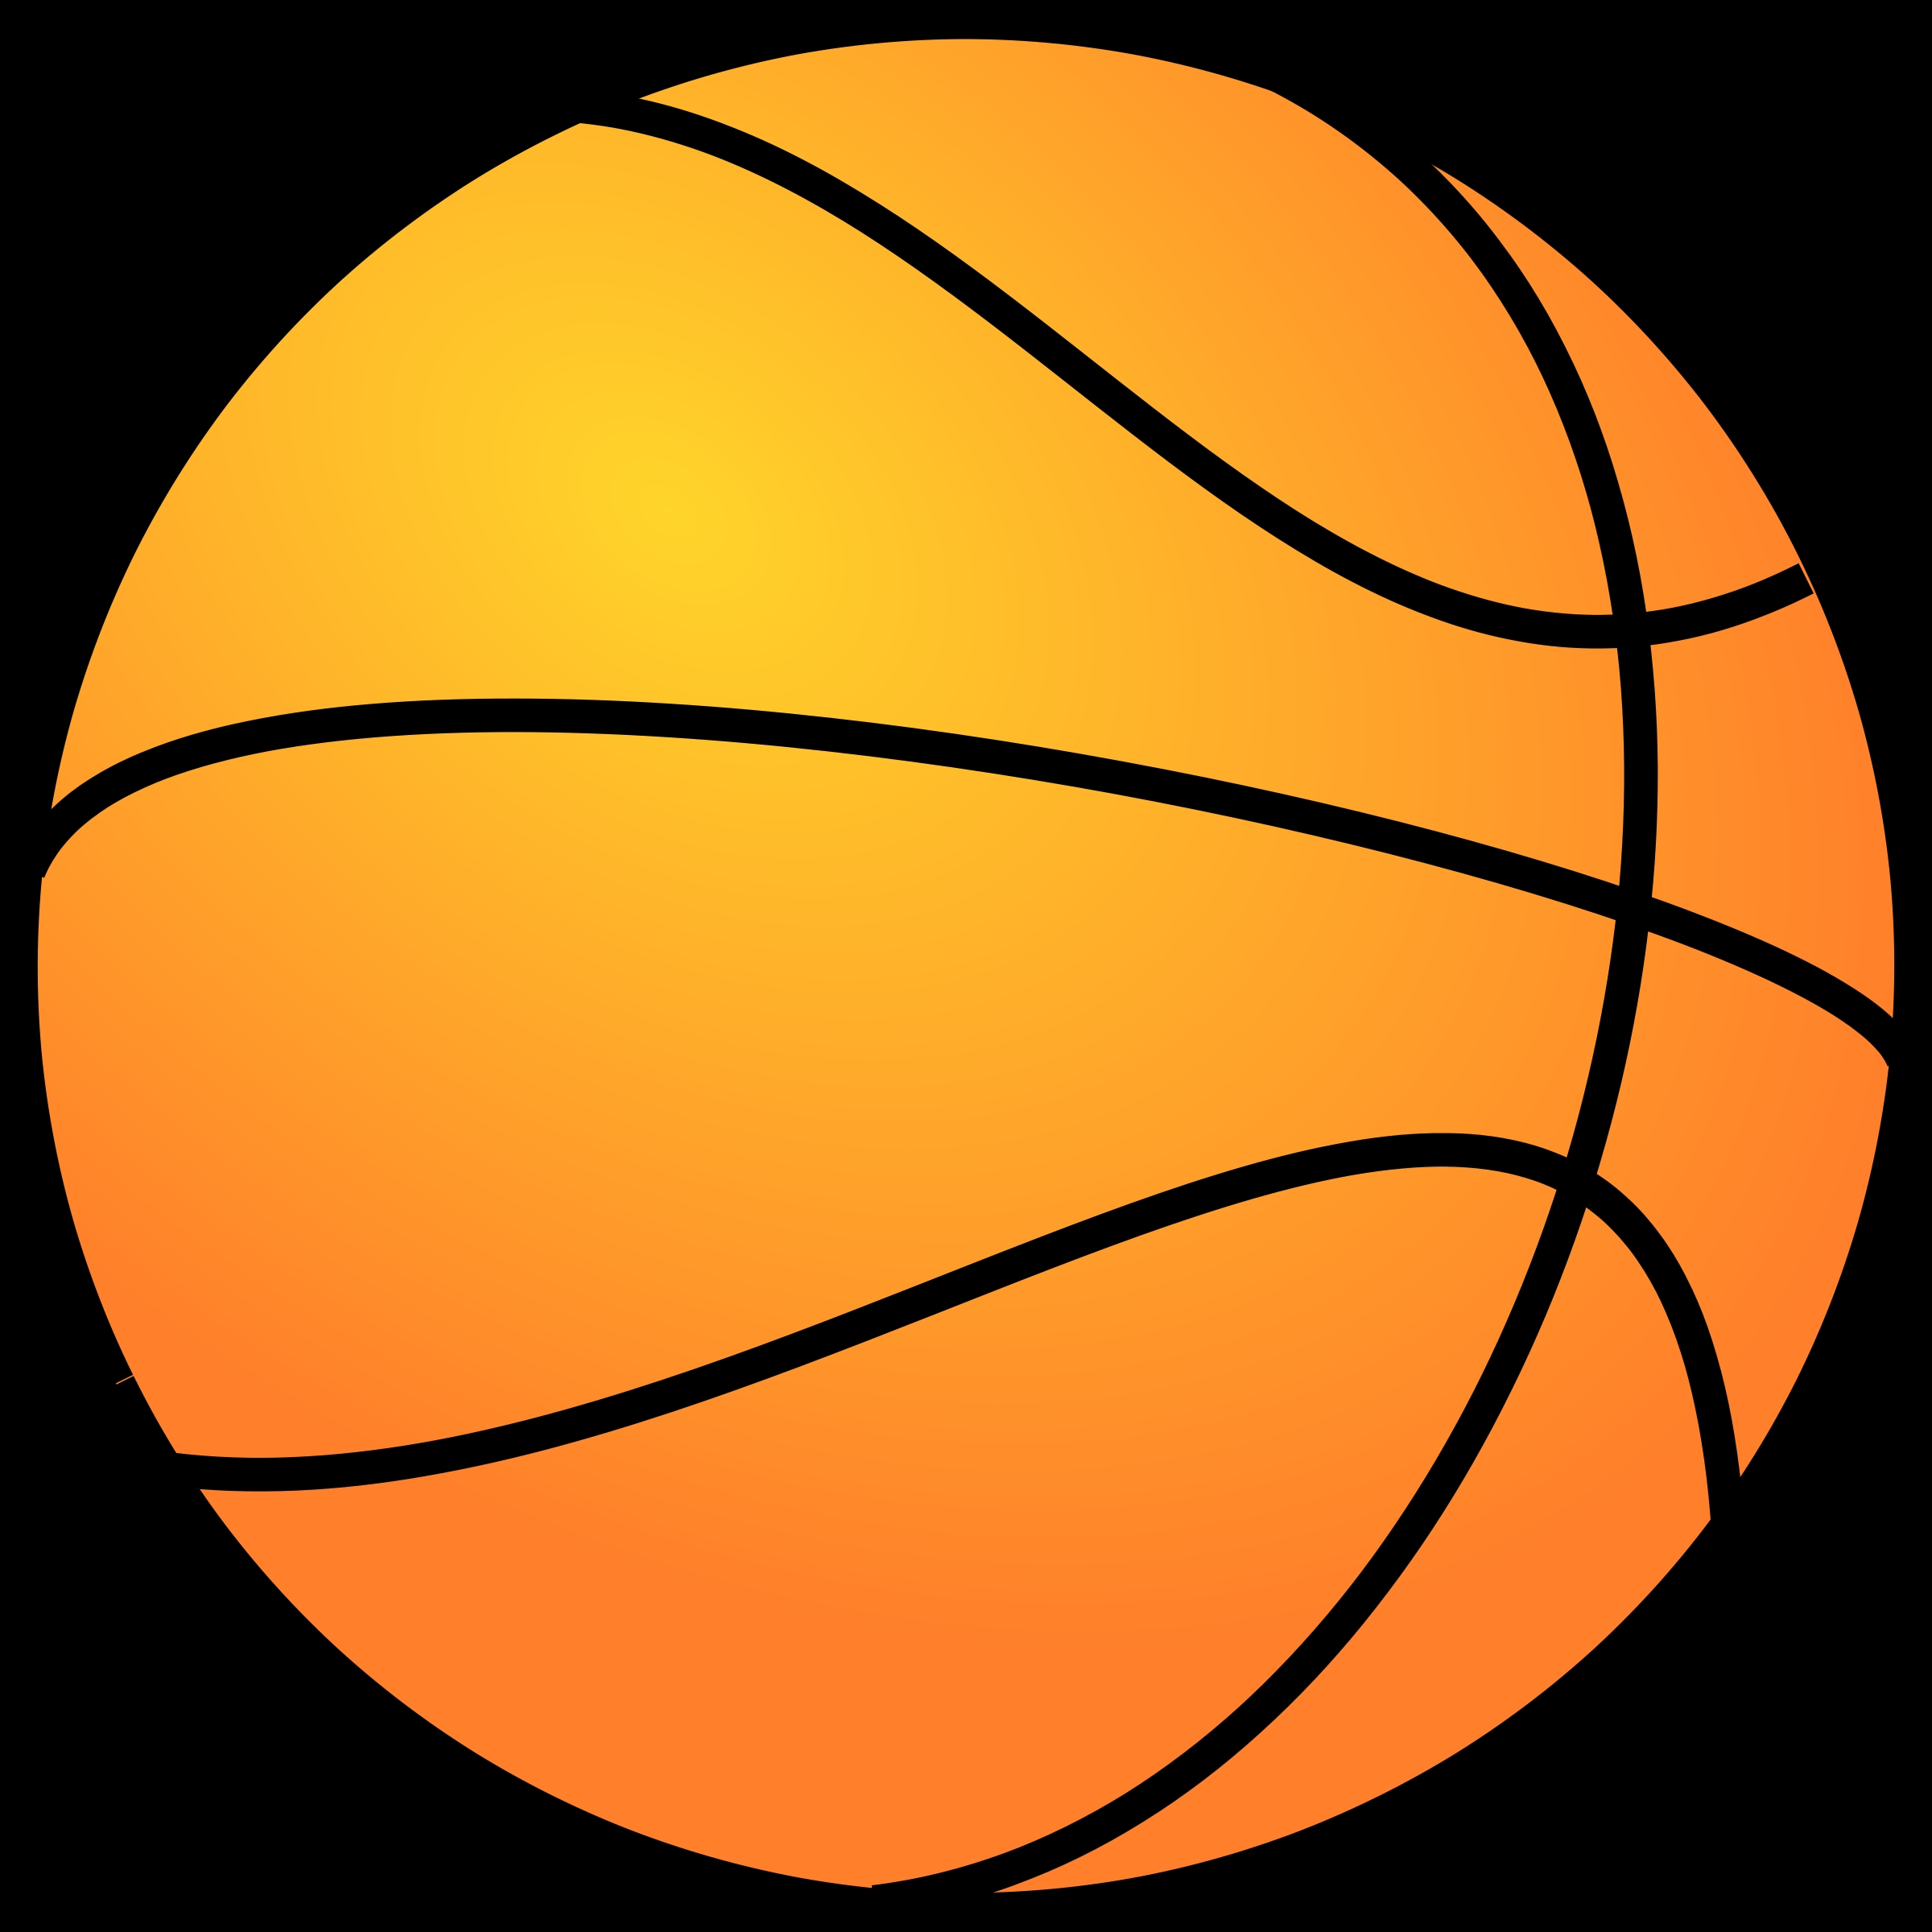 Basketball clipart basic. Awesome design digital collection